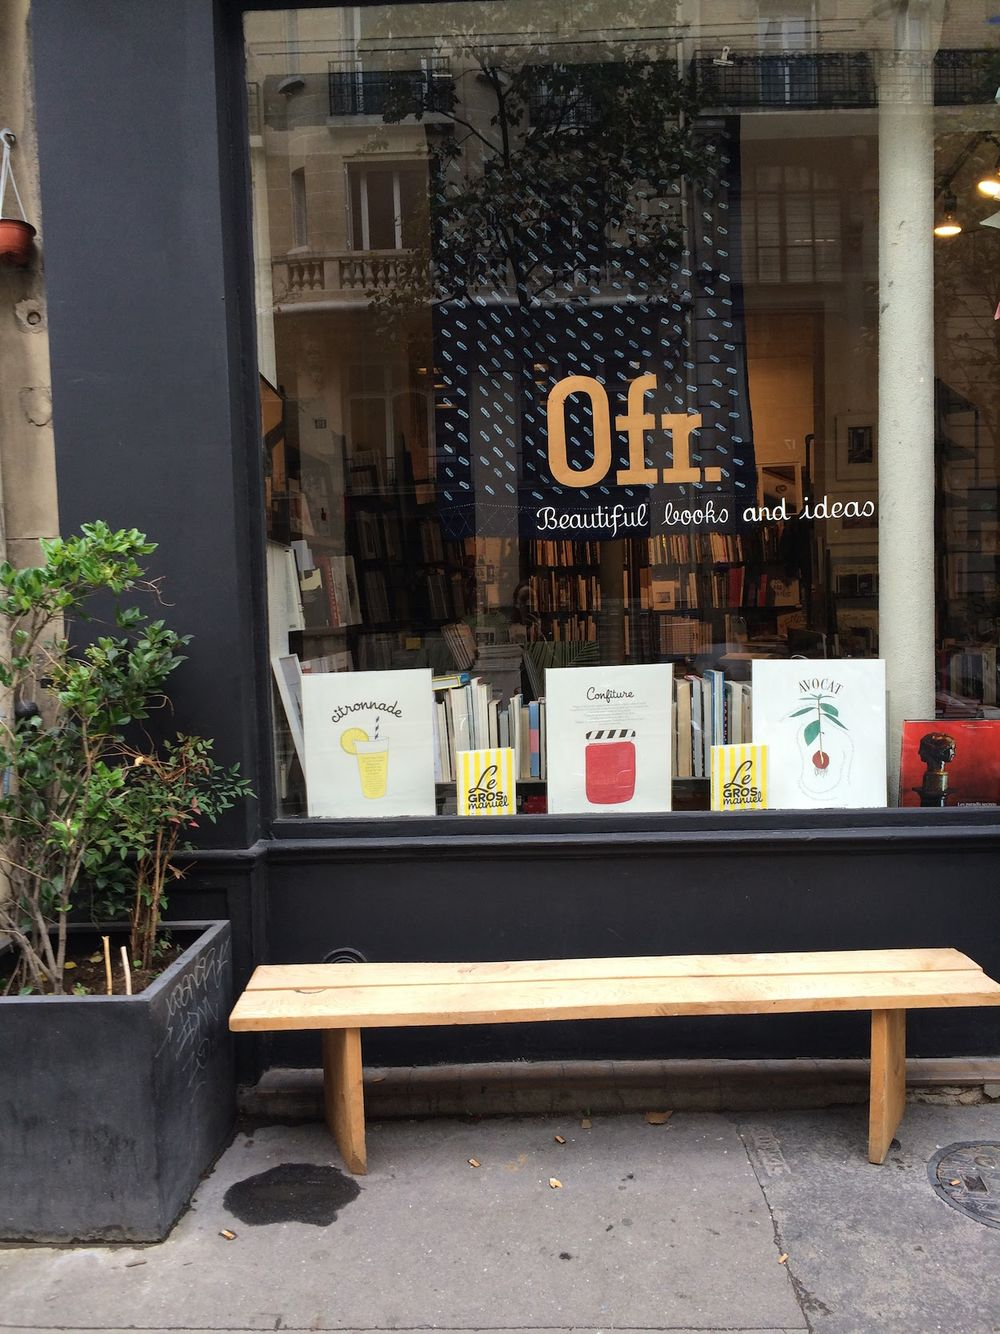 0fr Bookstore, Le Marais, Paris Guide